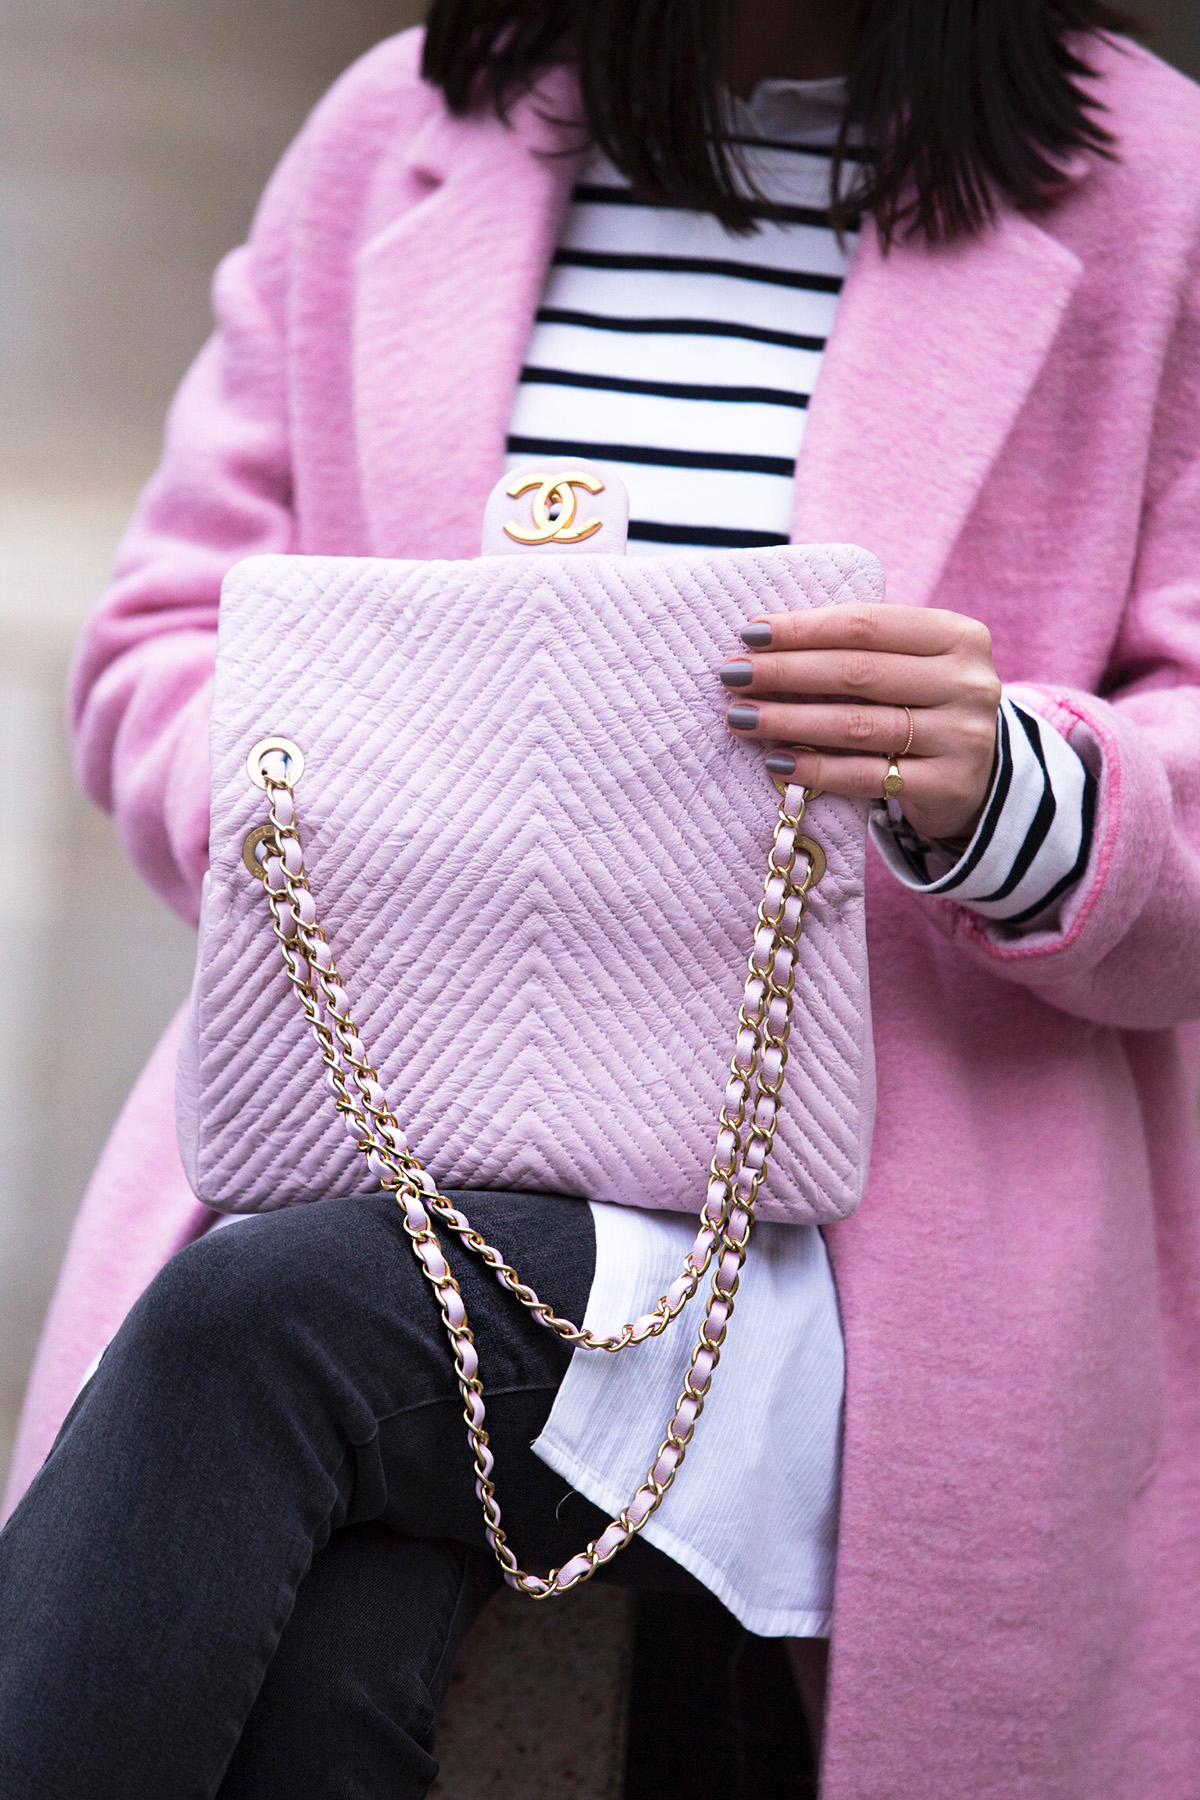 Pink Chanel Bag & Stripes At Palais Royal